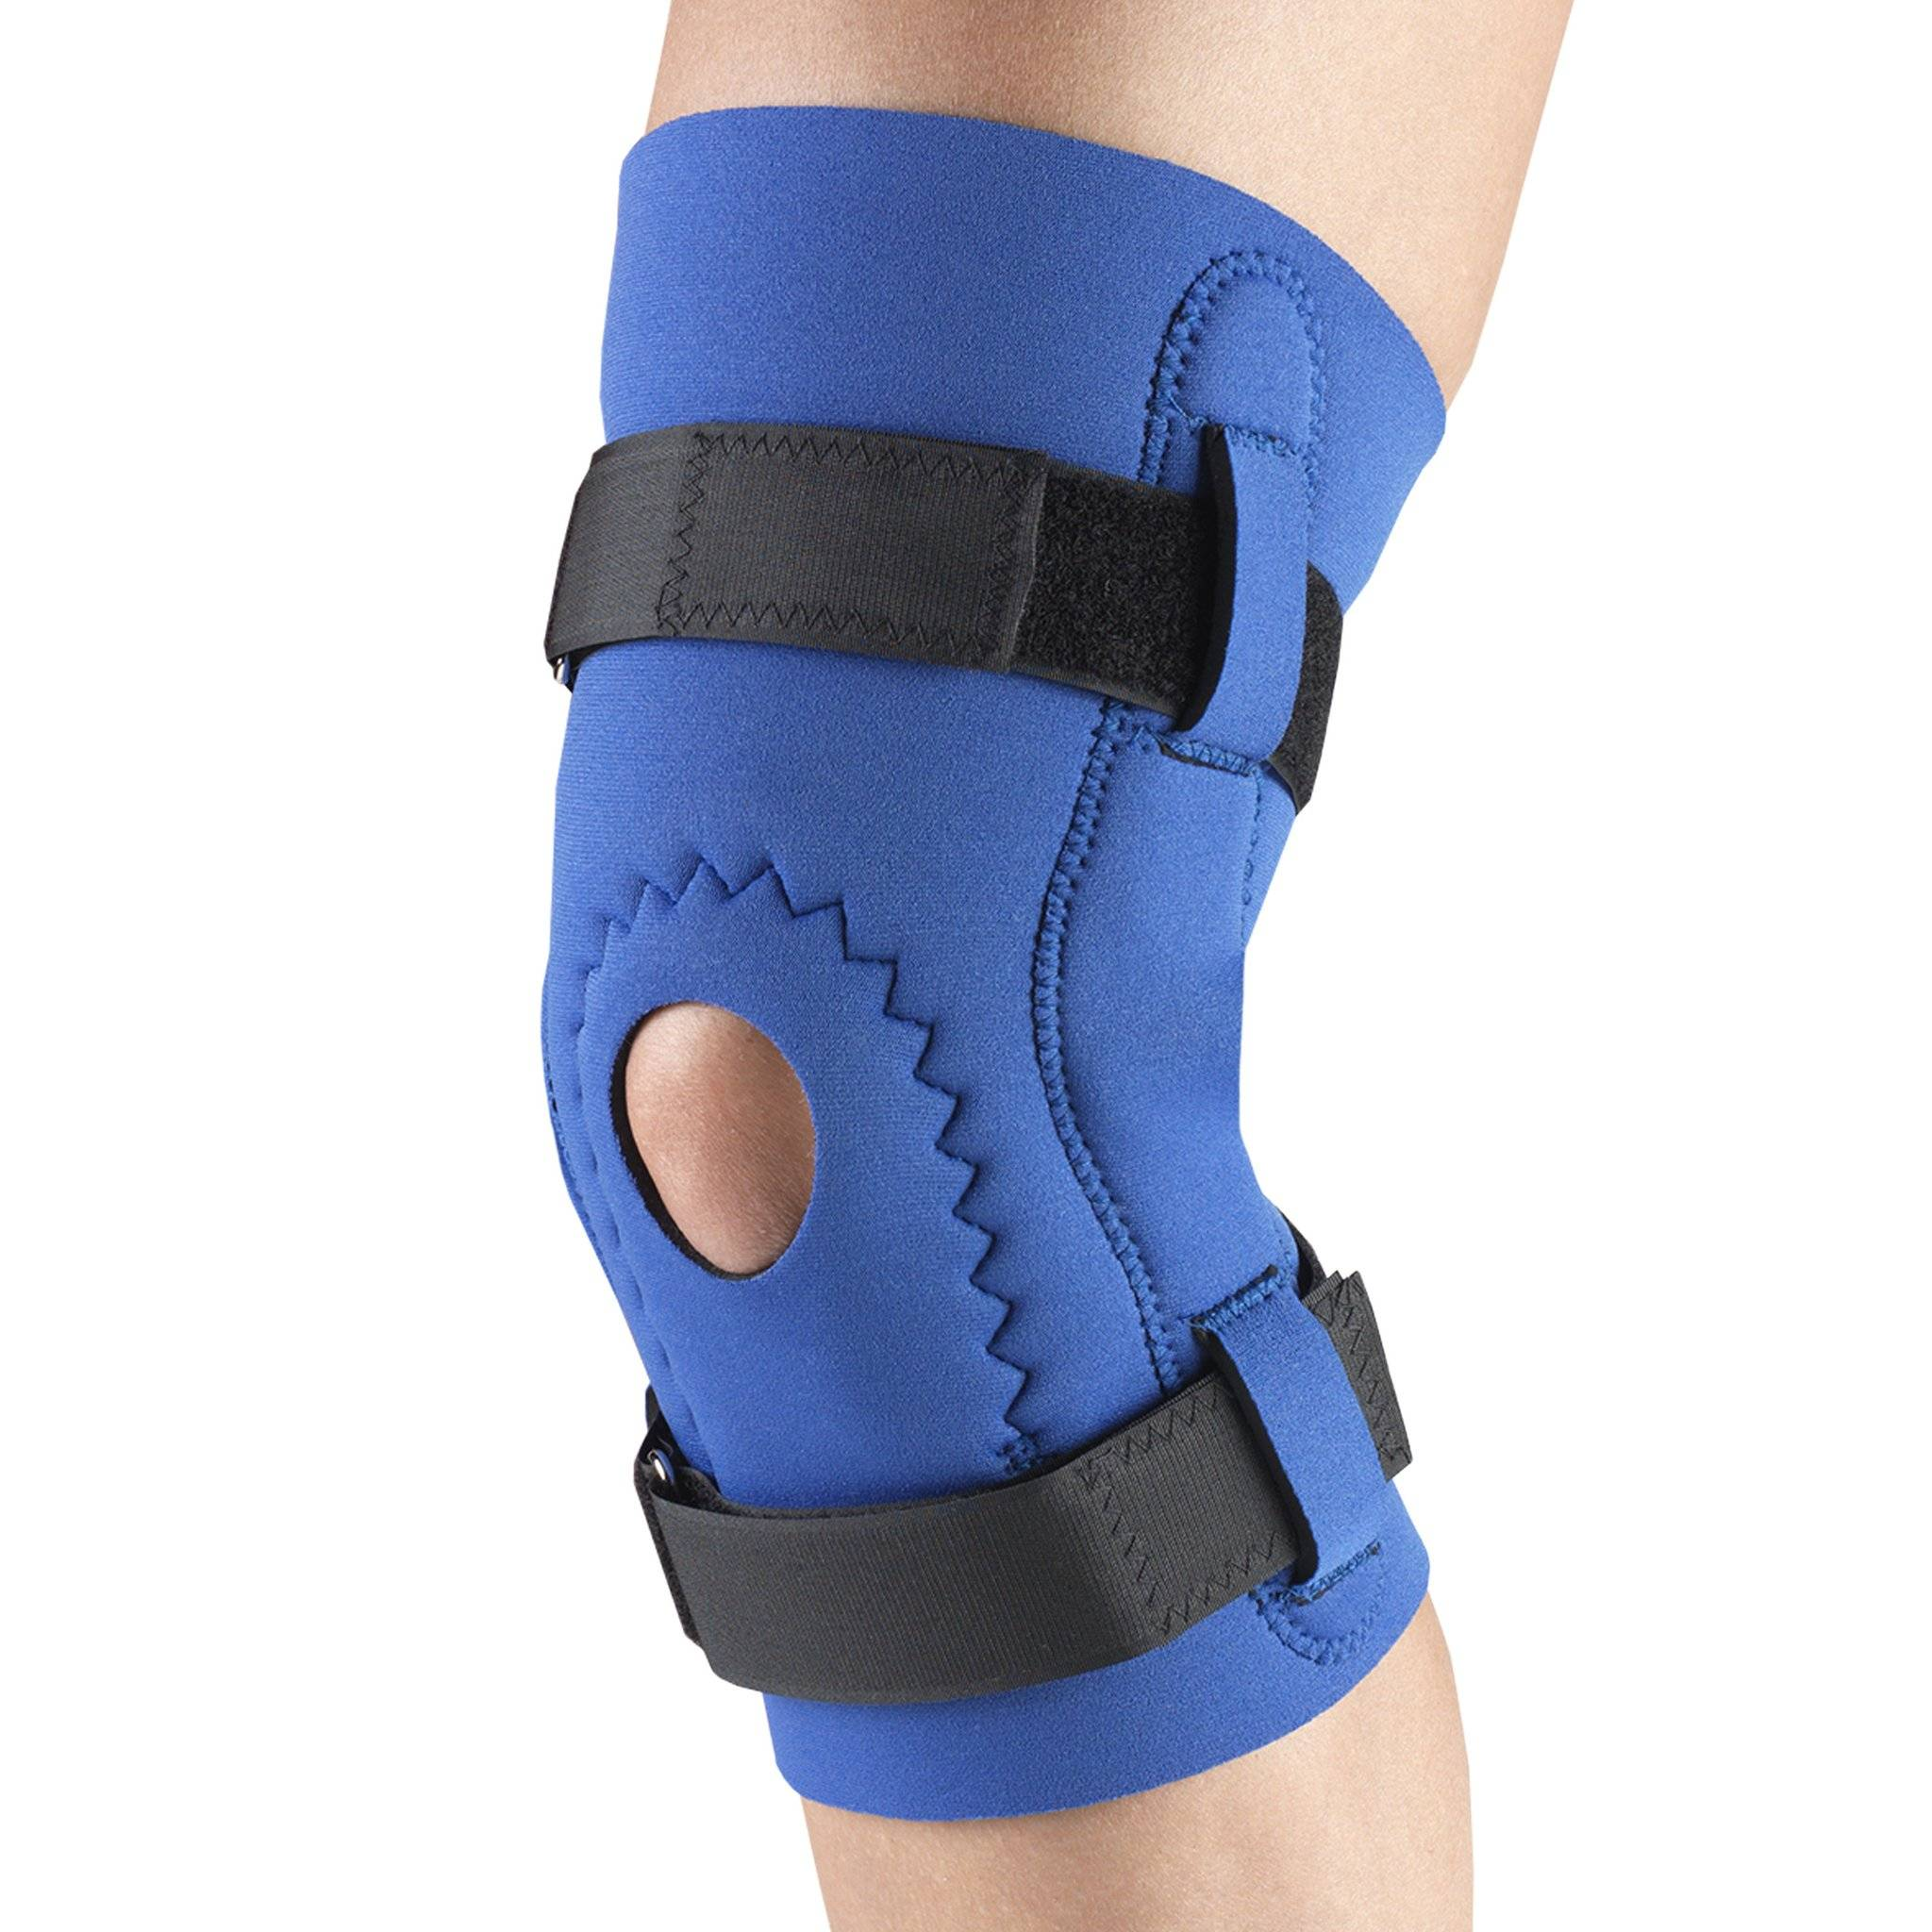 0143 / NEOPRENE KNEE SLEEVE - HOR-SHU PAD, HINGED BARS